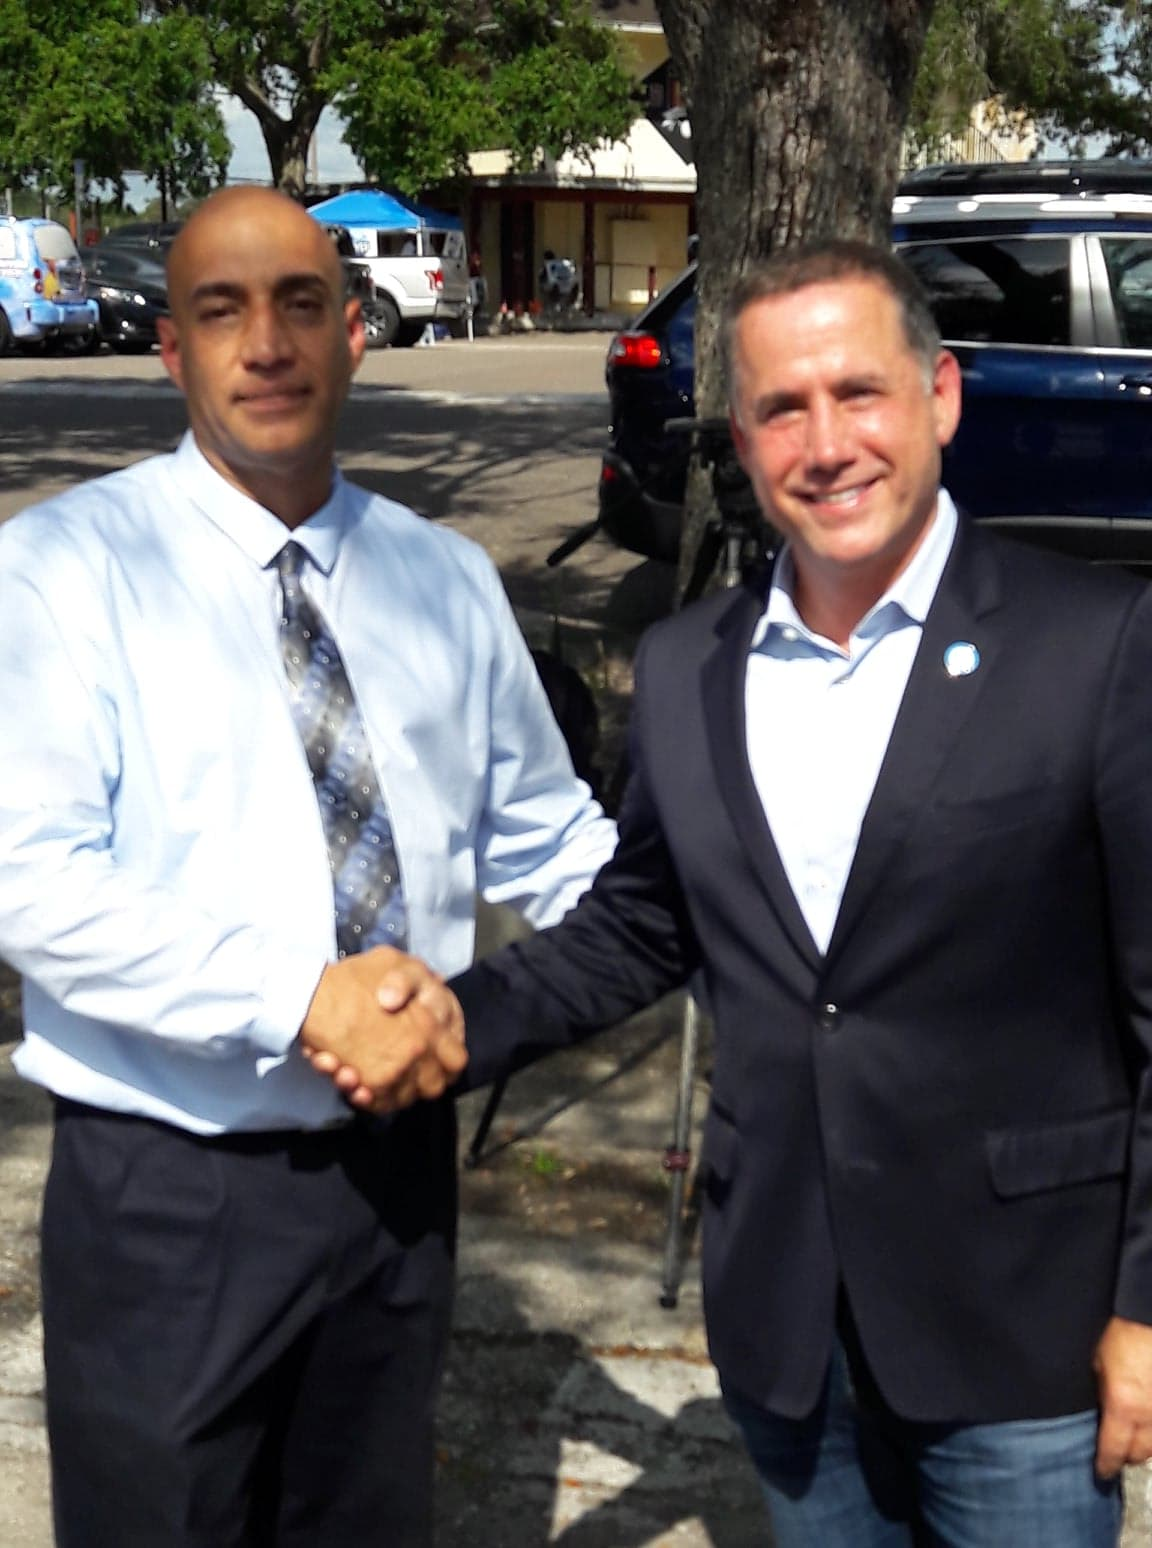 Robert Merced with the former Mayor of Miami Philip Levine